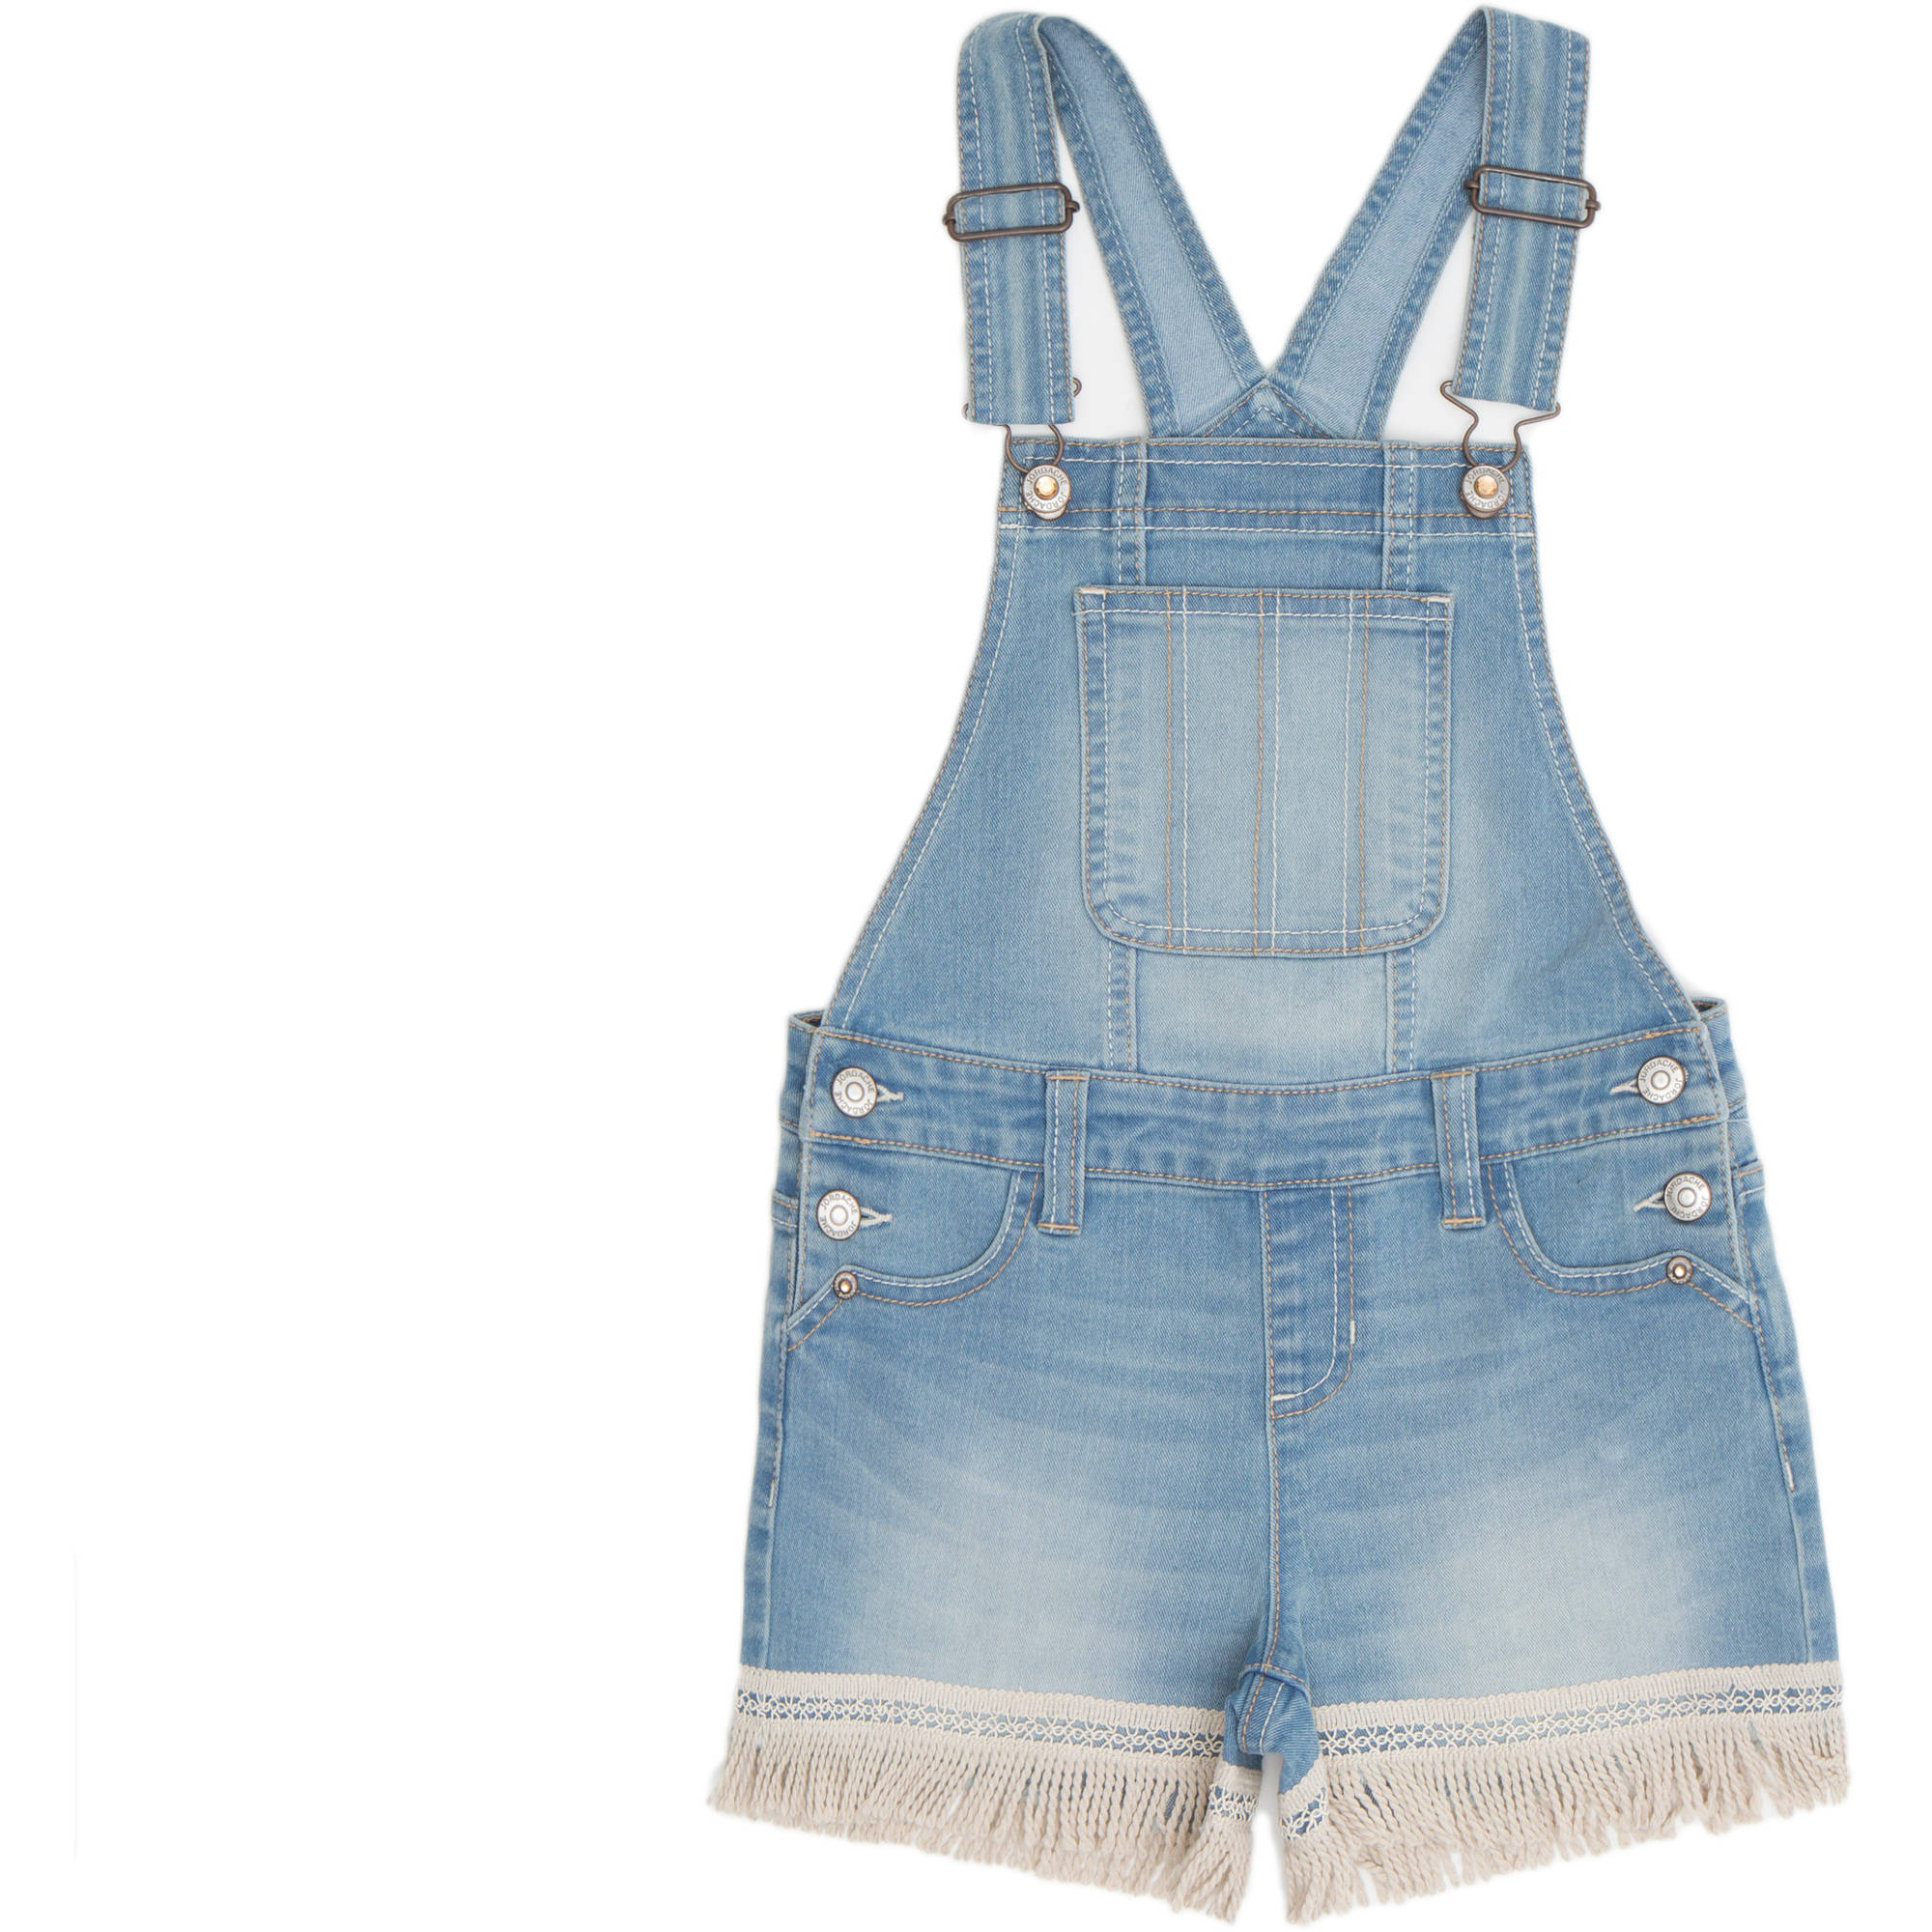 Jordache Girls' Fringe Hem Shortalls